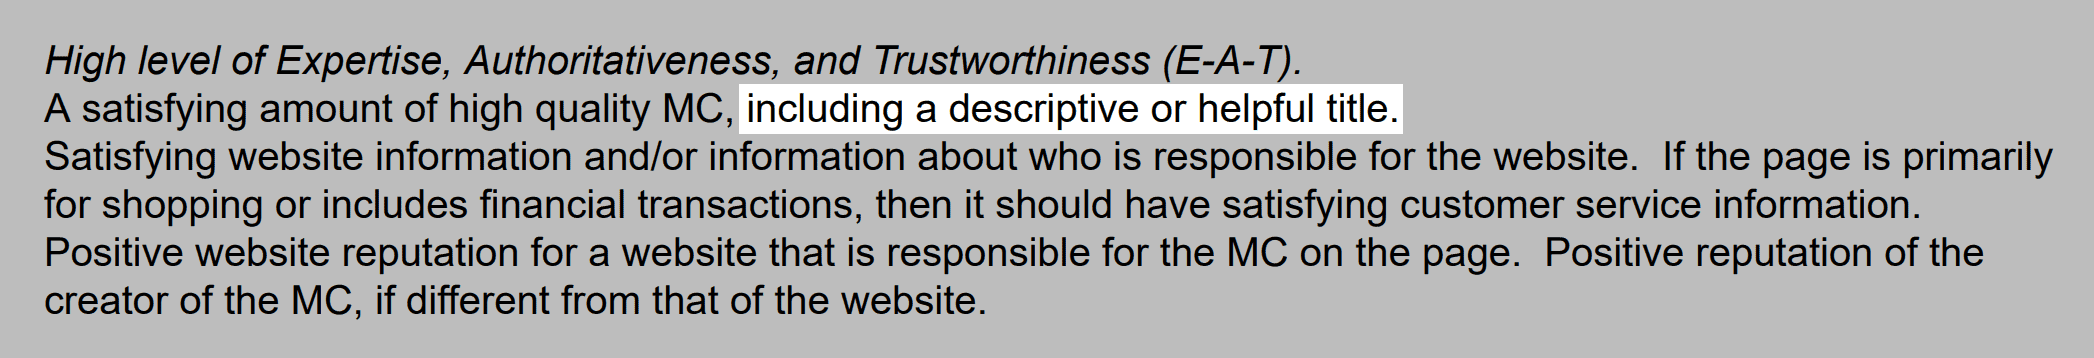 Google guidelines state that descriptive titles are important